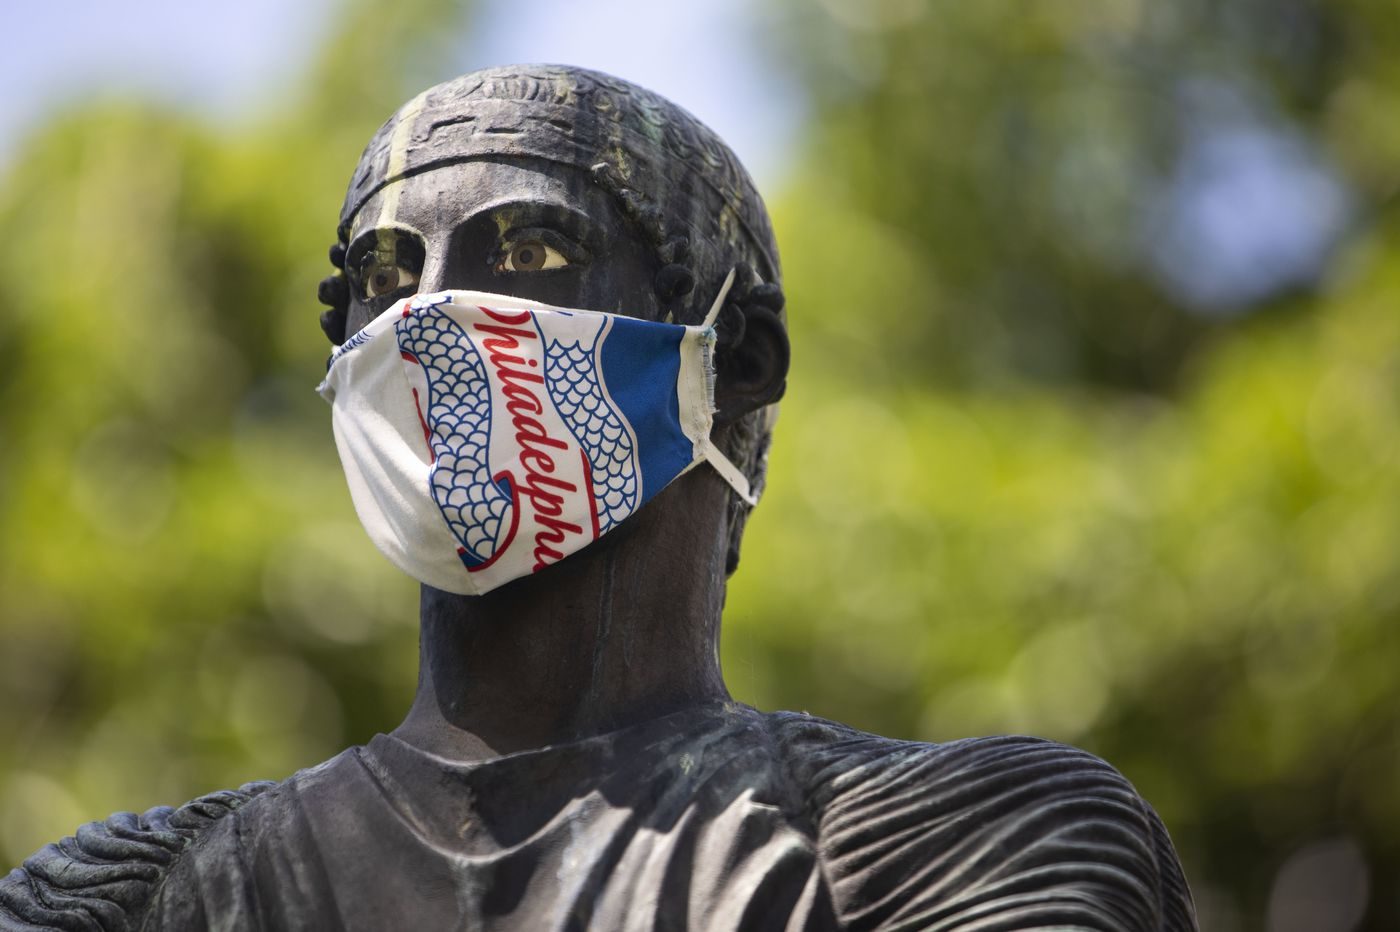 Philly requires masks as city sees increase in new coronavirus cases